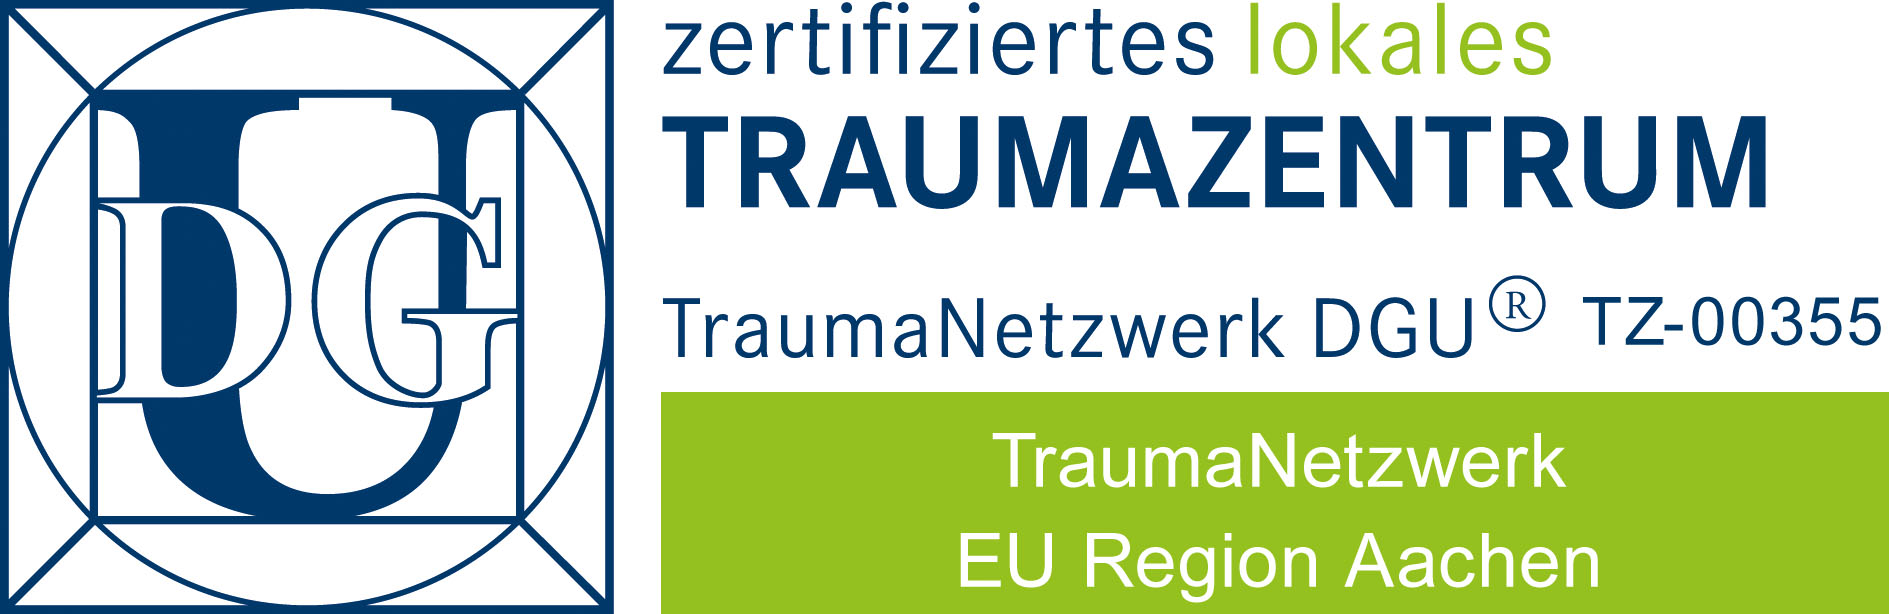 DGU Traumazentrum